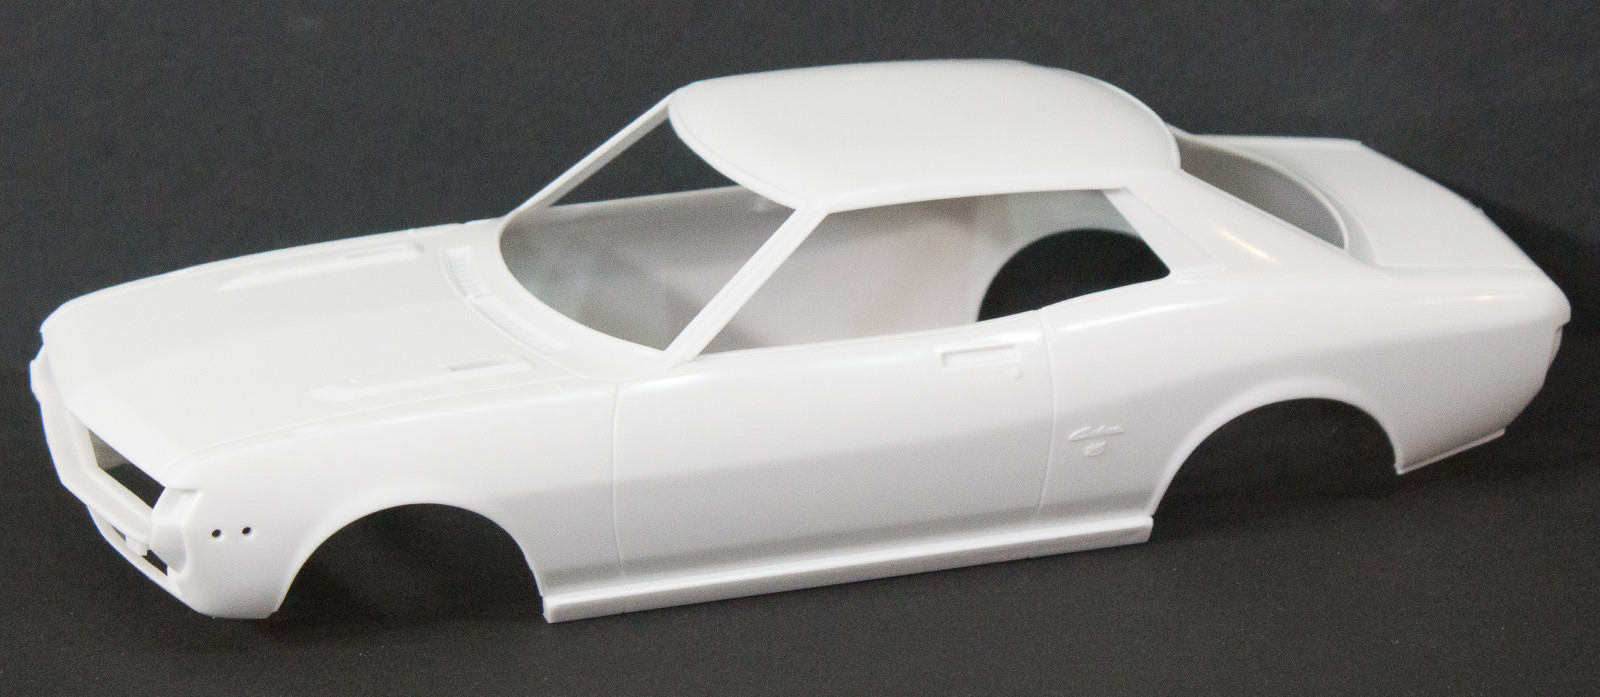 Hasegawa 20265 1 24 Toyota Celica 1600gt Kit First Look